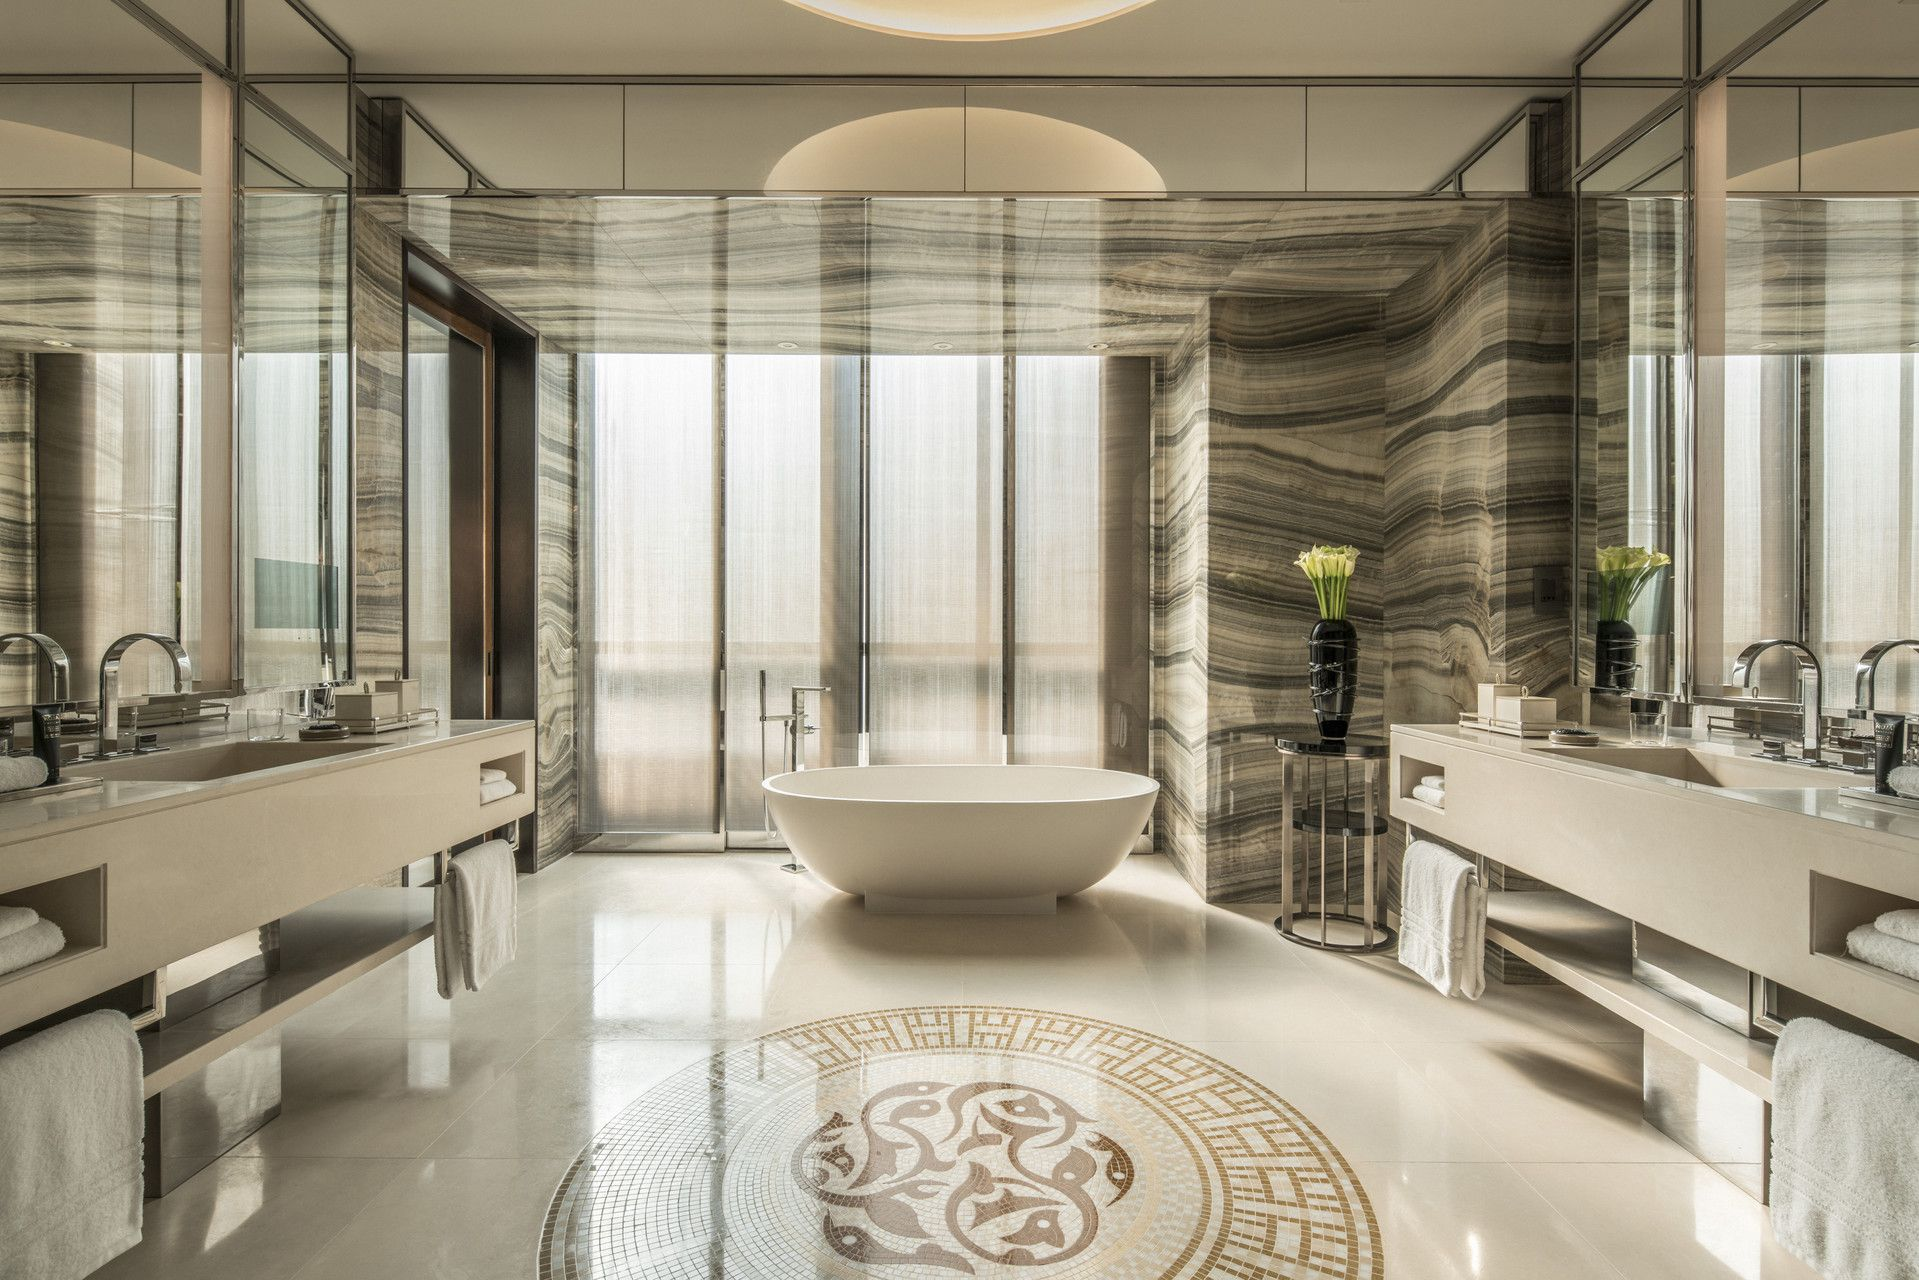 Penthouse Suite At Four Seasons Hotel Dubai Difc Luxury Hotel Bathroom Bathroom Design Luxury Bathroom Accessories Luxury